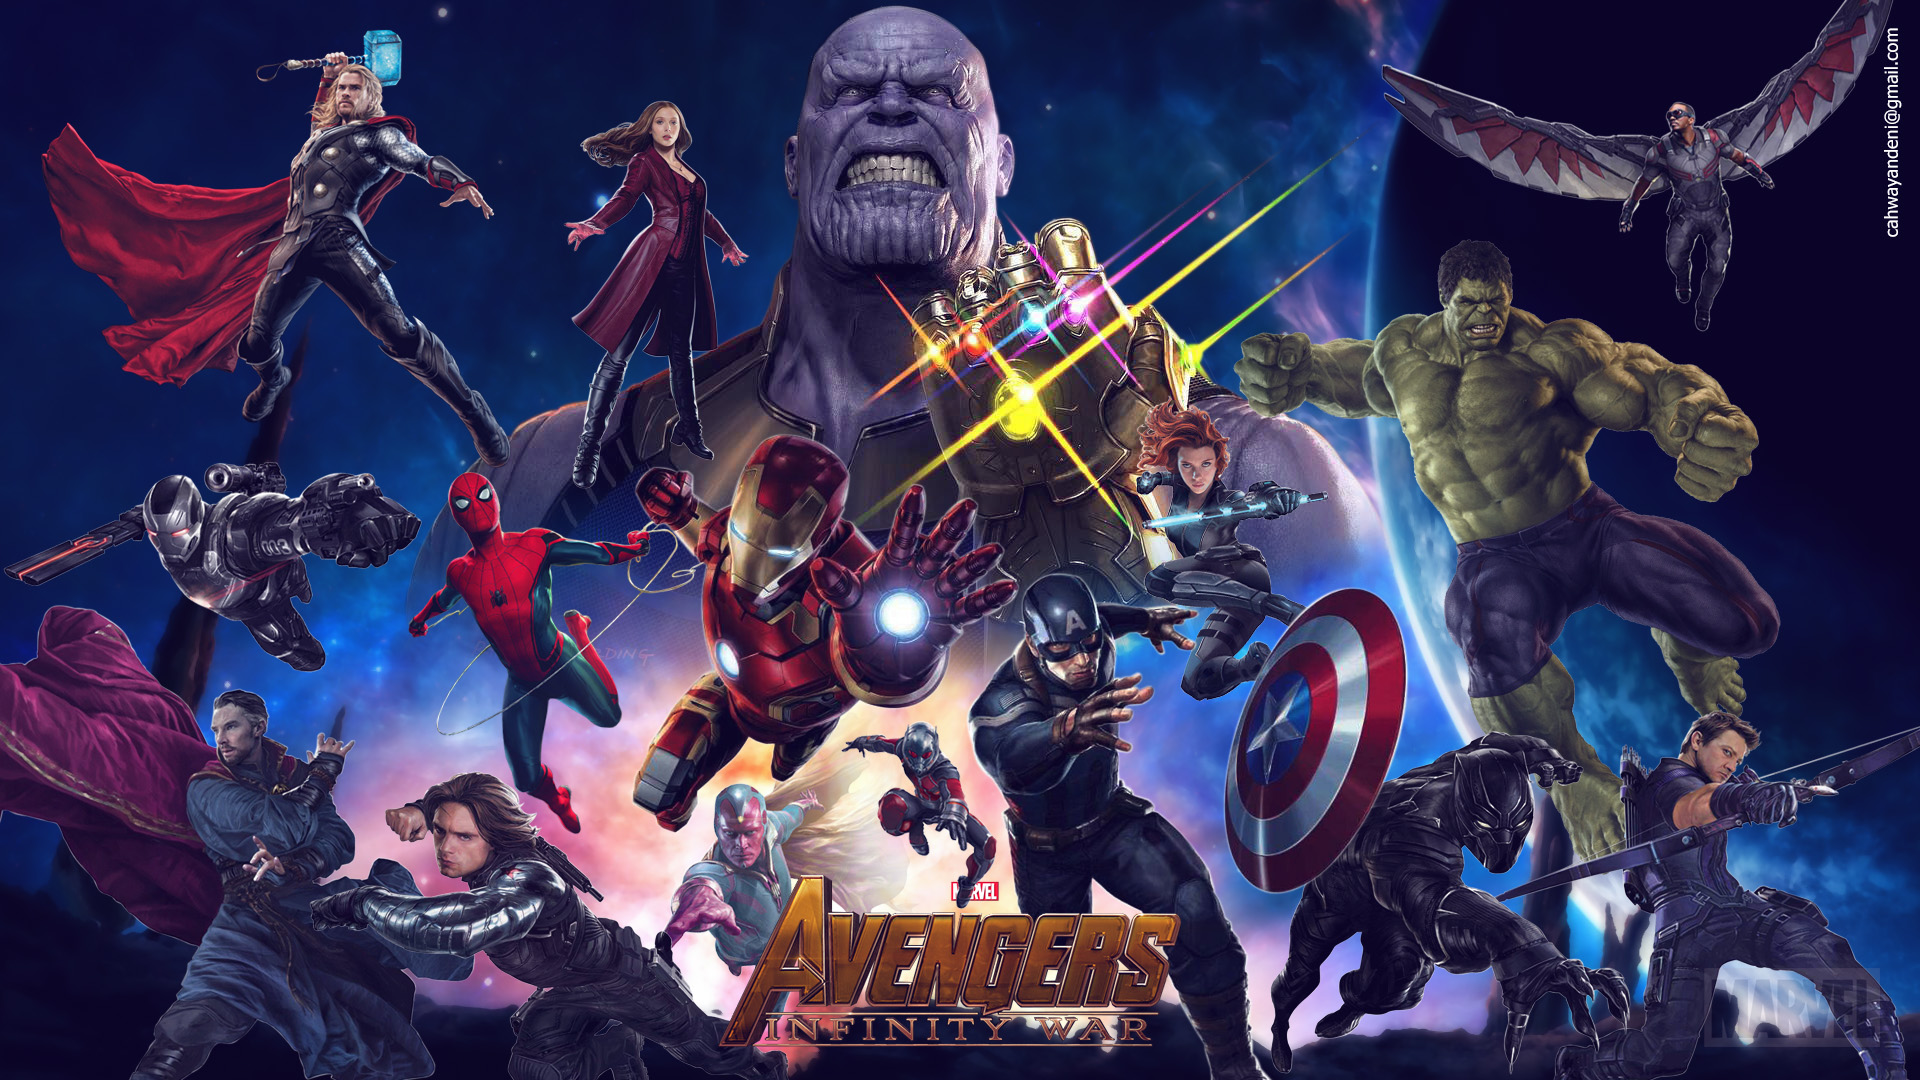 Avengers Infinity War 2018 Movie 4K Wallpapers